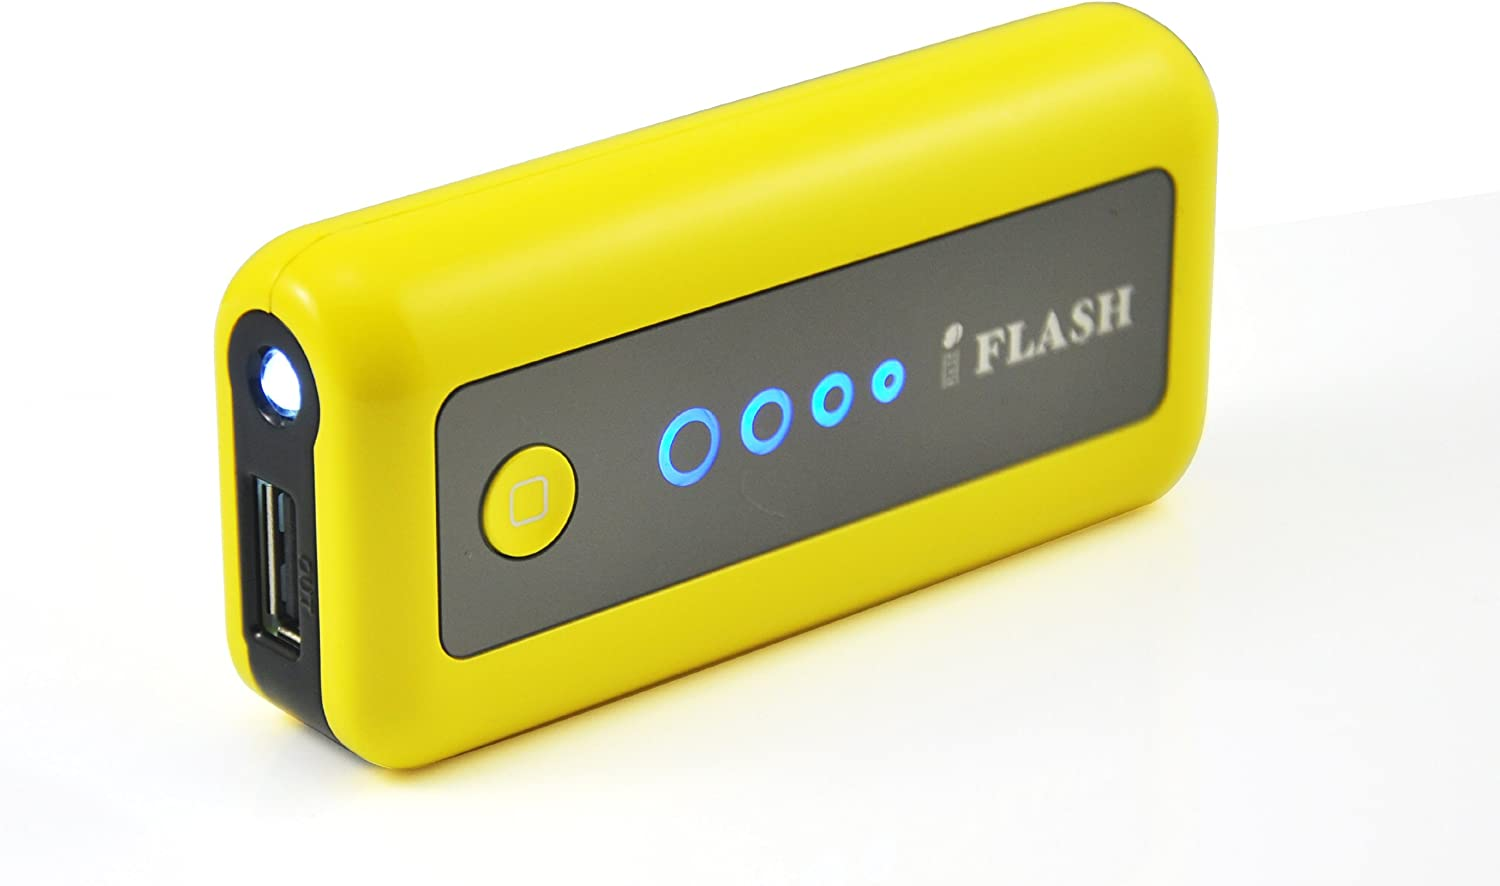 iFlash 5600mAh External Battery (AC Adapter Charger Included) Support Apple iPhone 6 Plus / 6 / 5S/5C/5/4/4S, iPod Touch/Classic/Nano (AC Adapter and Apple Cable are NOT included); Motorola MOTO X2/G2/E2/X/G/E, Verizon Droid Razr/X2/Bionic; Samsung Galaxy S6 Edge / S6 / S5 / S4 / S3 / S2 / Mini; HTC: One X/M7/M8/M9 -- (Yellow Color, Retail Package)